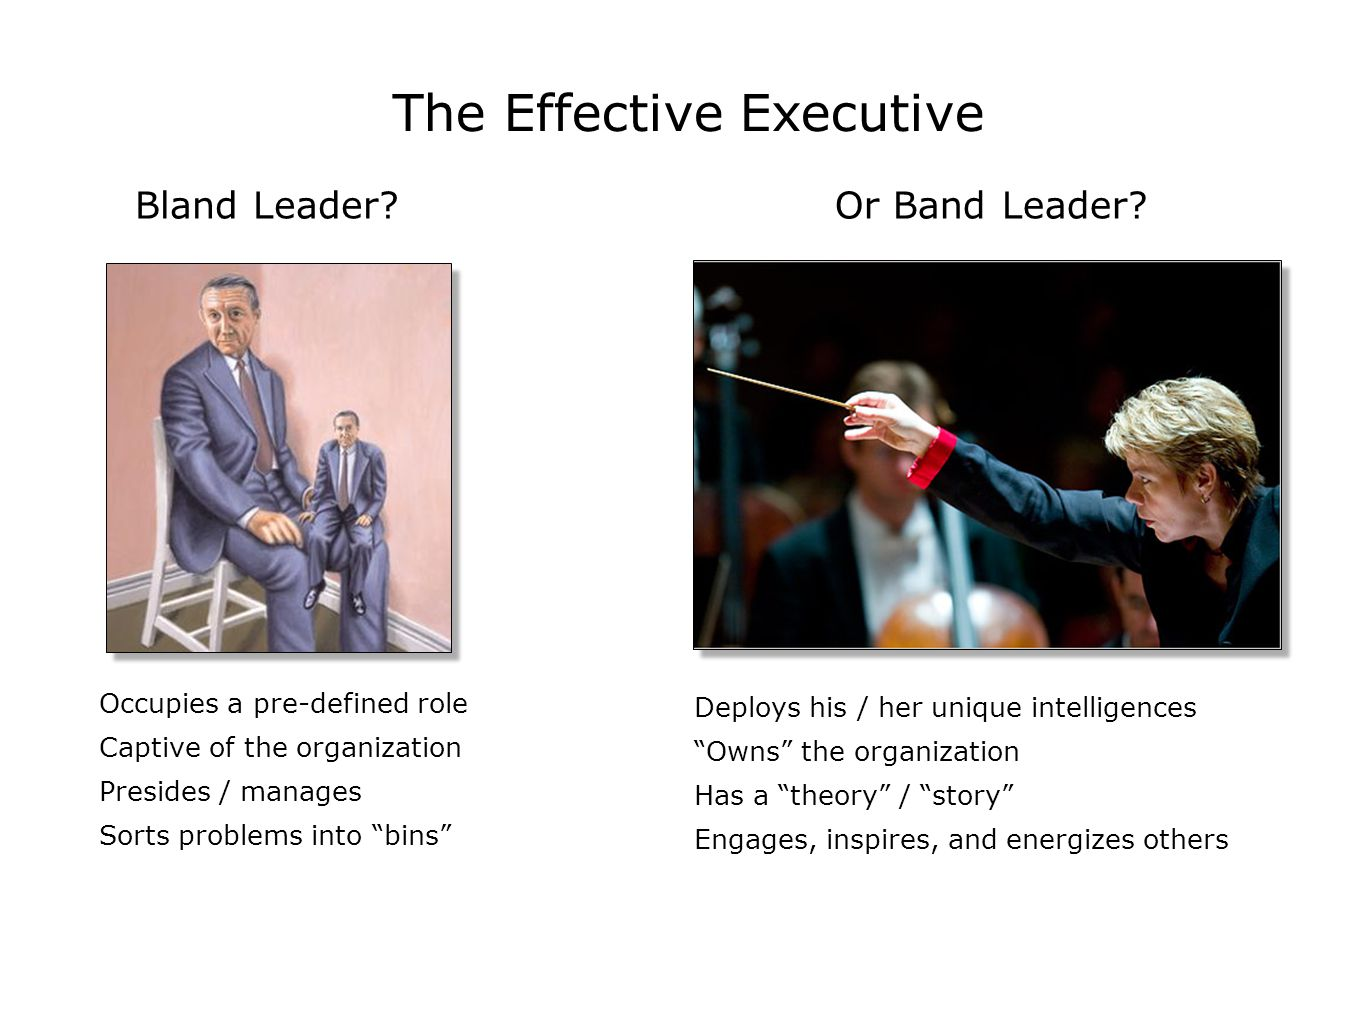 The Effective Executive Occupies a pre-defined role Captive of the organization Presides / manages Sorts problems into bins Deploys his / her unique intelligences Owns the organization Has a theory / story Engages, inspires, and energizes others Bland Leader Or Band Leader